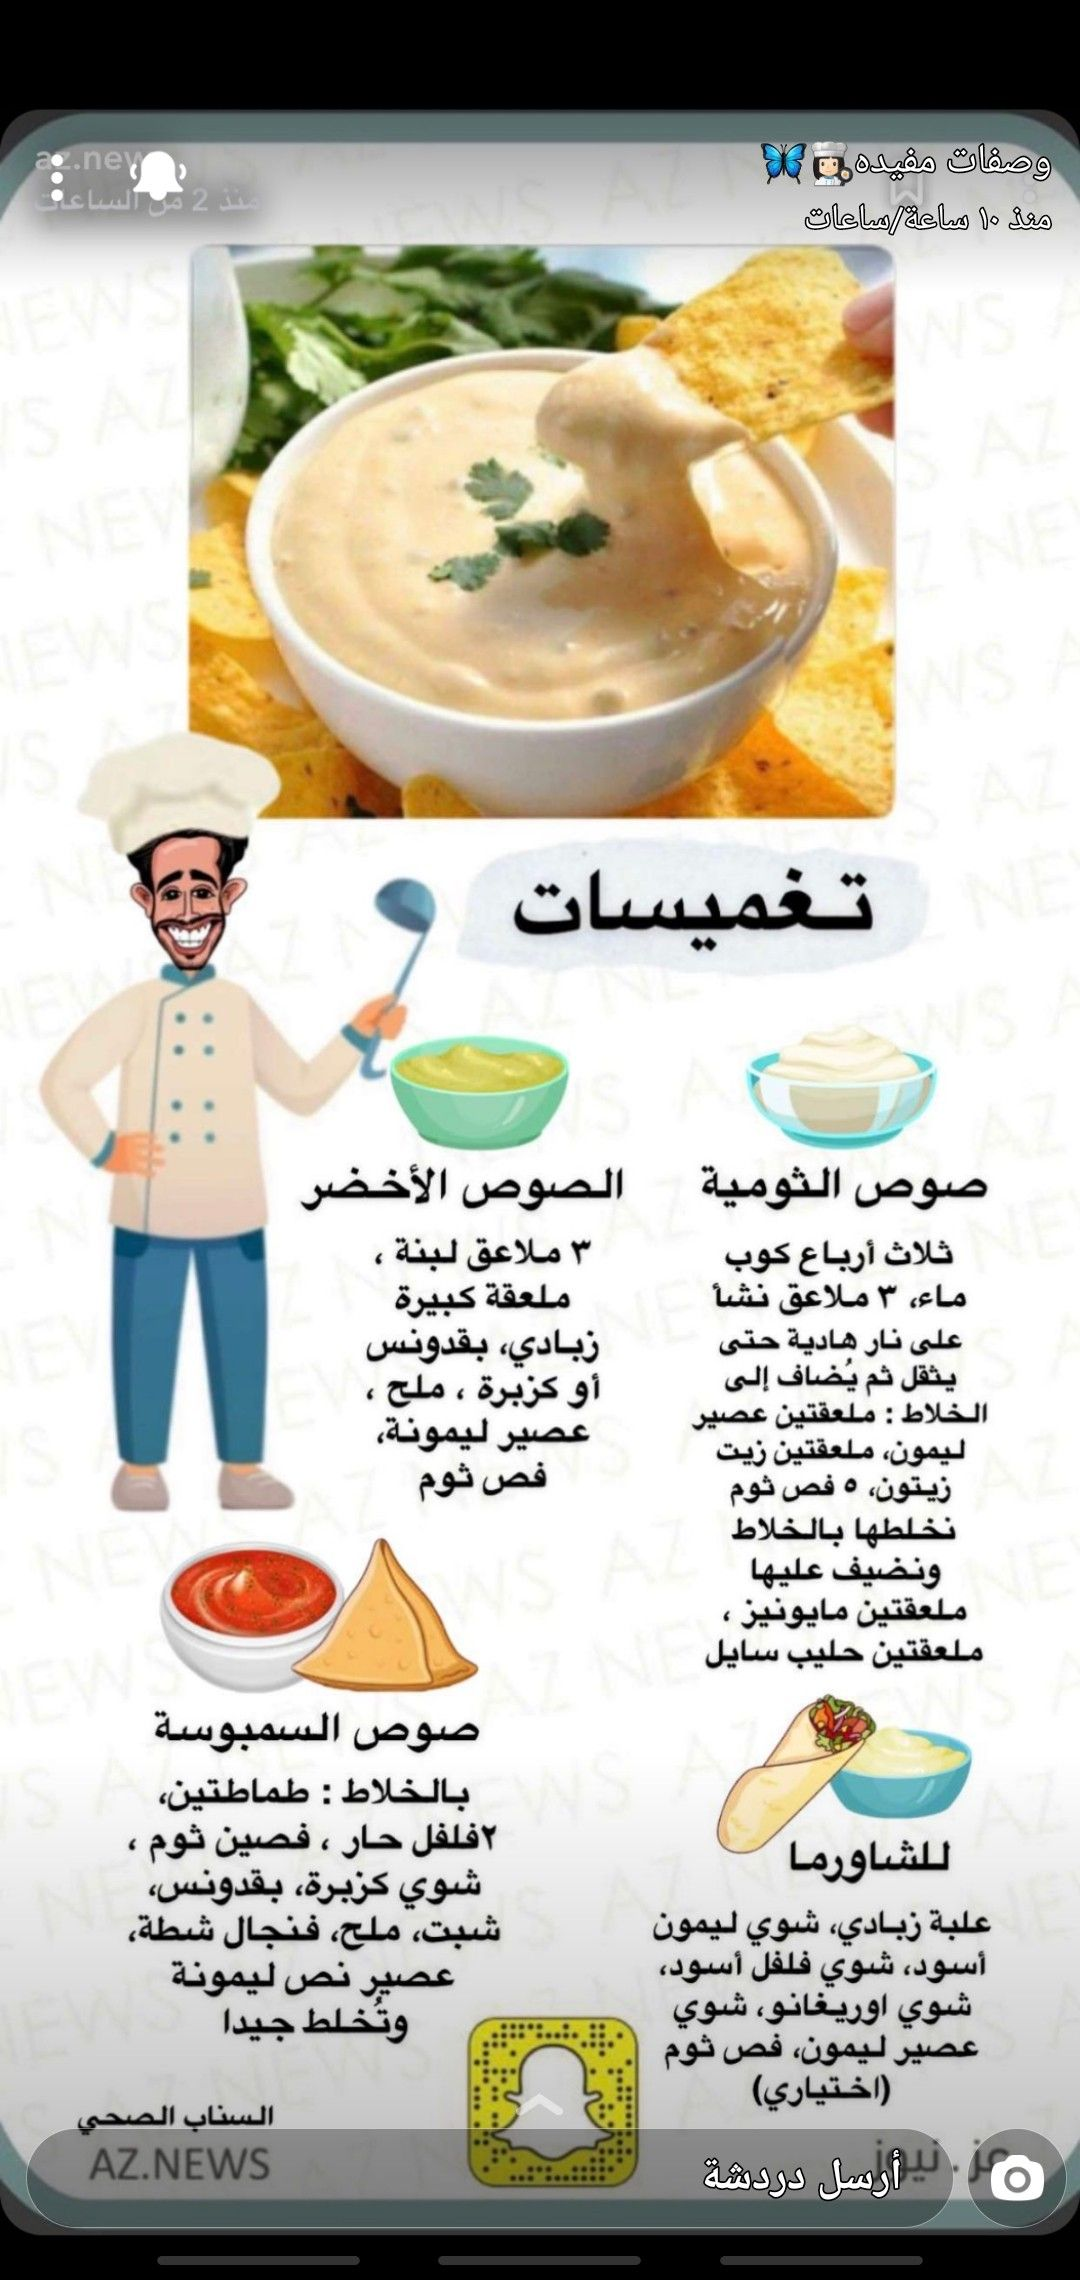 Pin By Awab On صوص In 2020 Food Garnishes Food Receipes Cooking Recipes Desserts